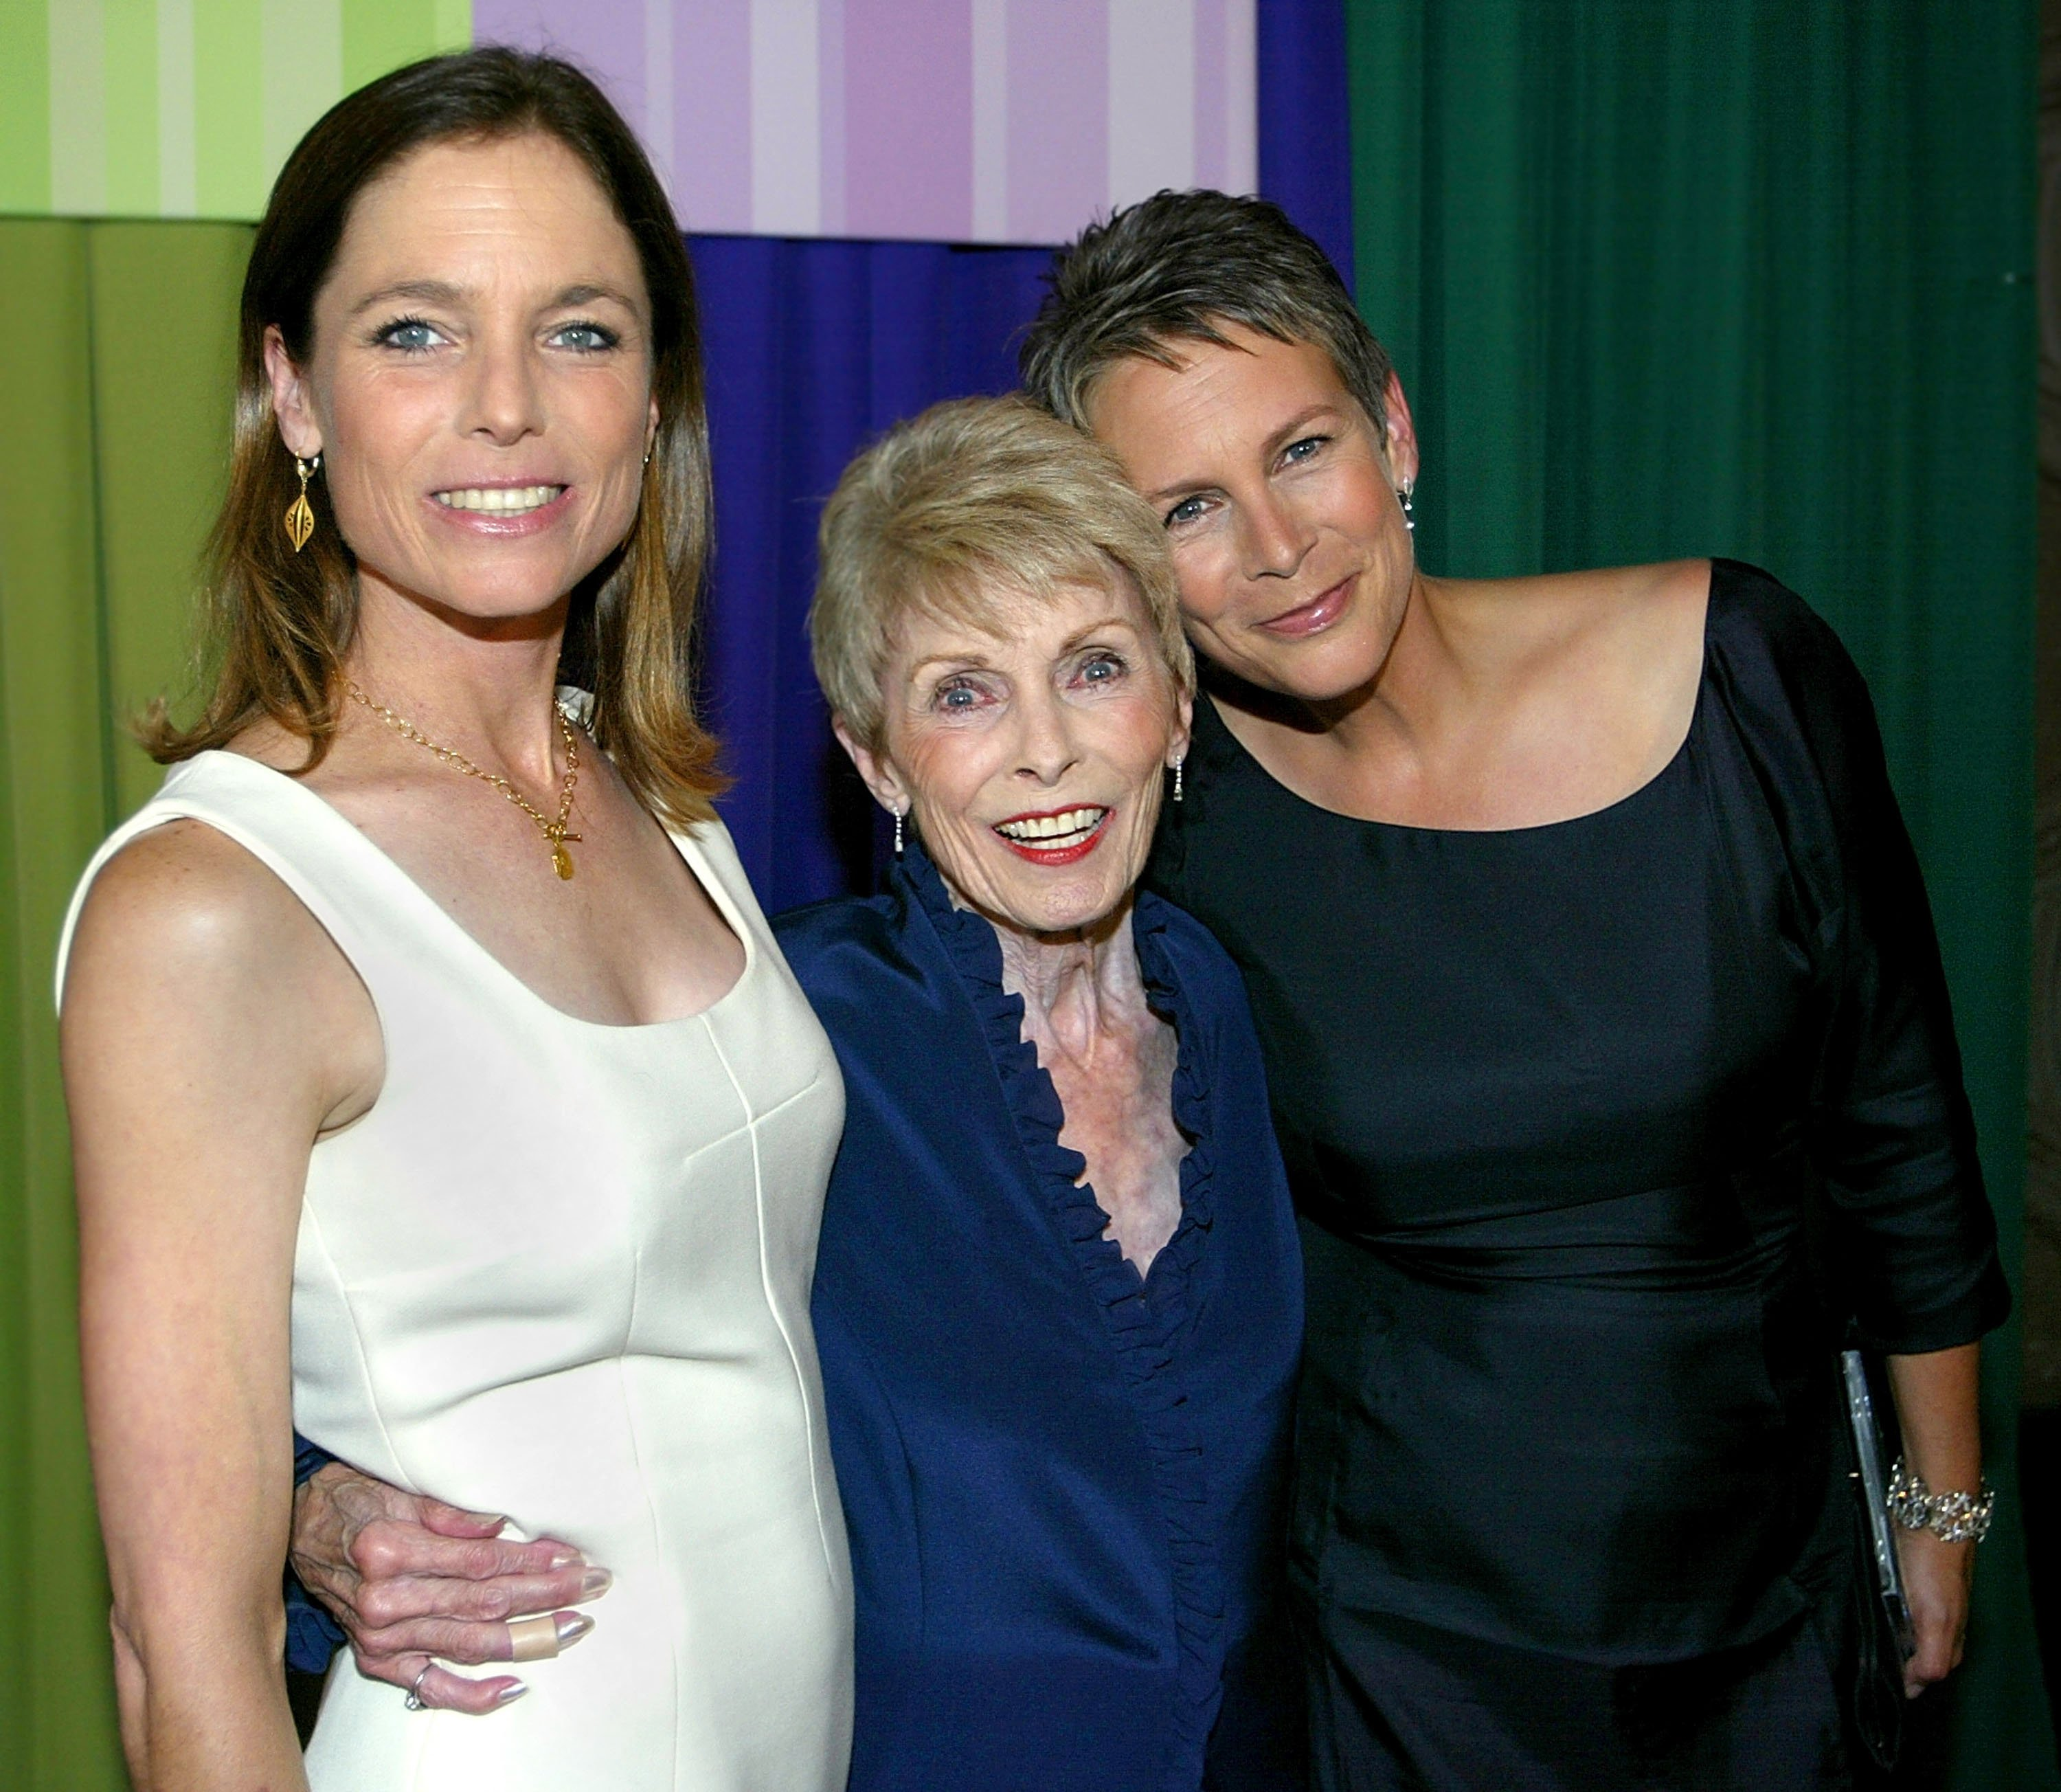 """Jamie Lee Curtis poses with sister Kelly Leigh and mom Janet Leigh at the premiere of """"Freaky Friday"""" in Hollywood in August 2003 